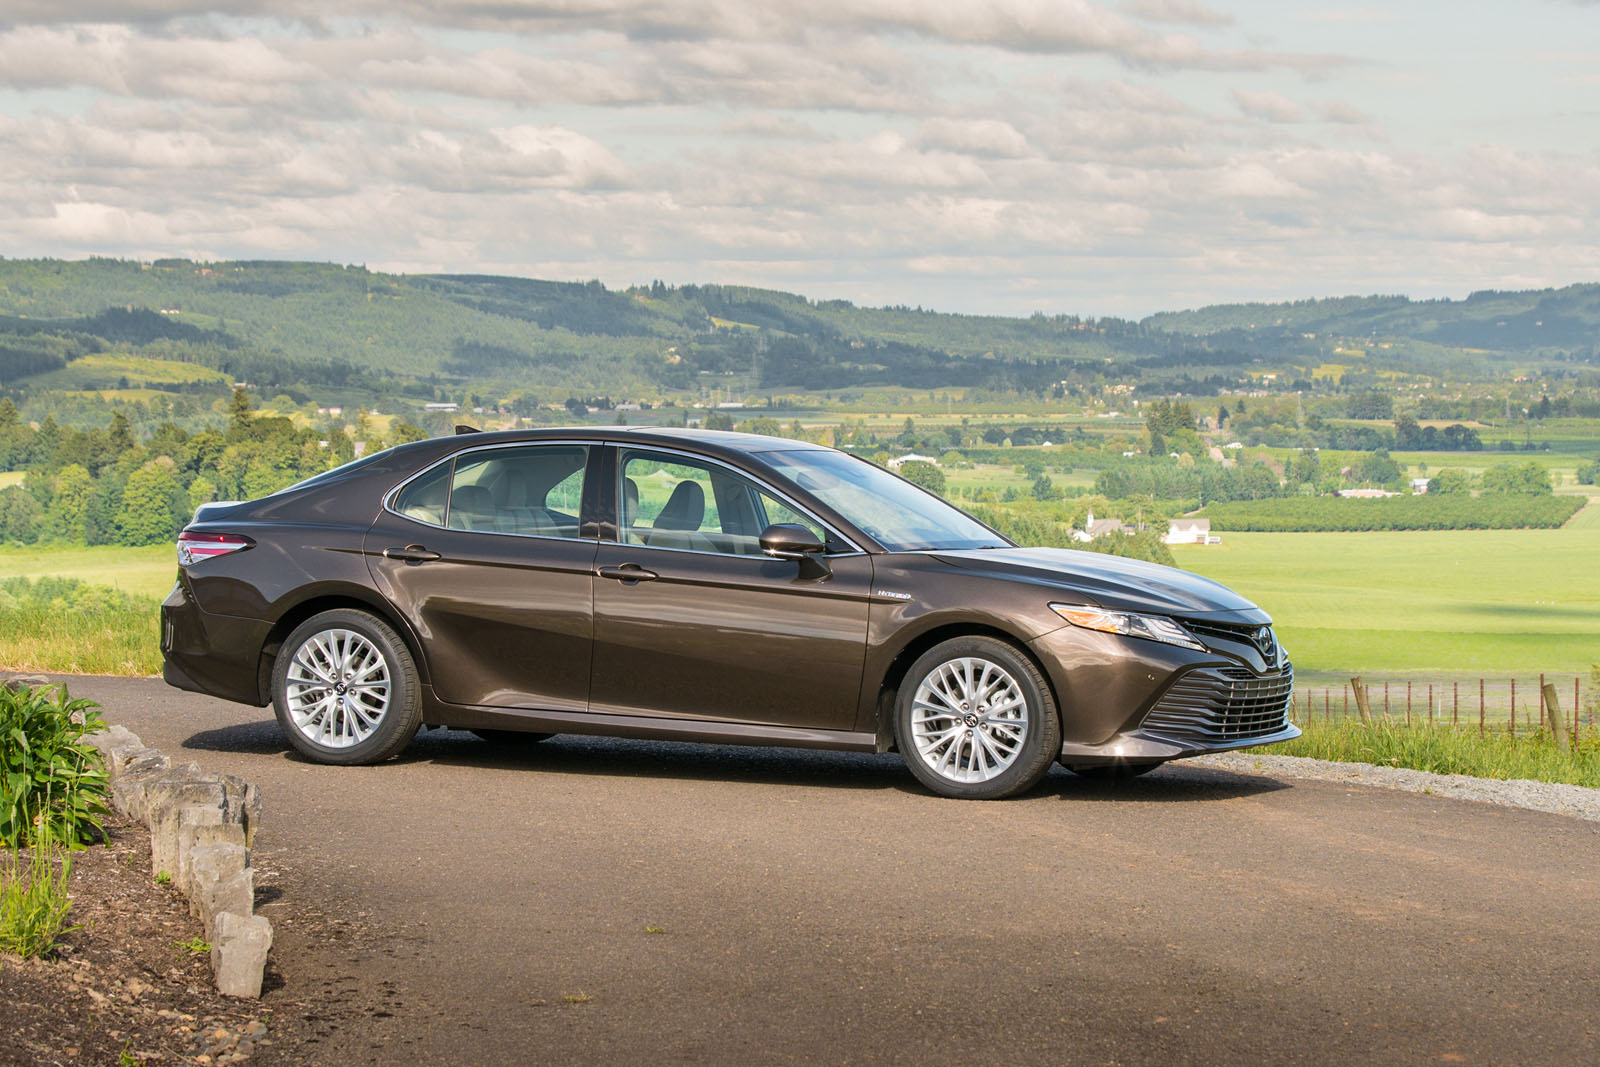 2018 Toyota Camry Hybrid Review 18